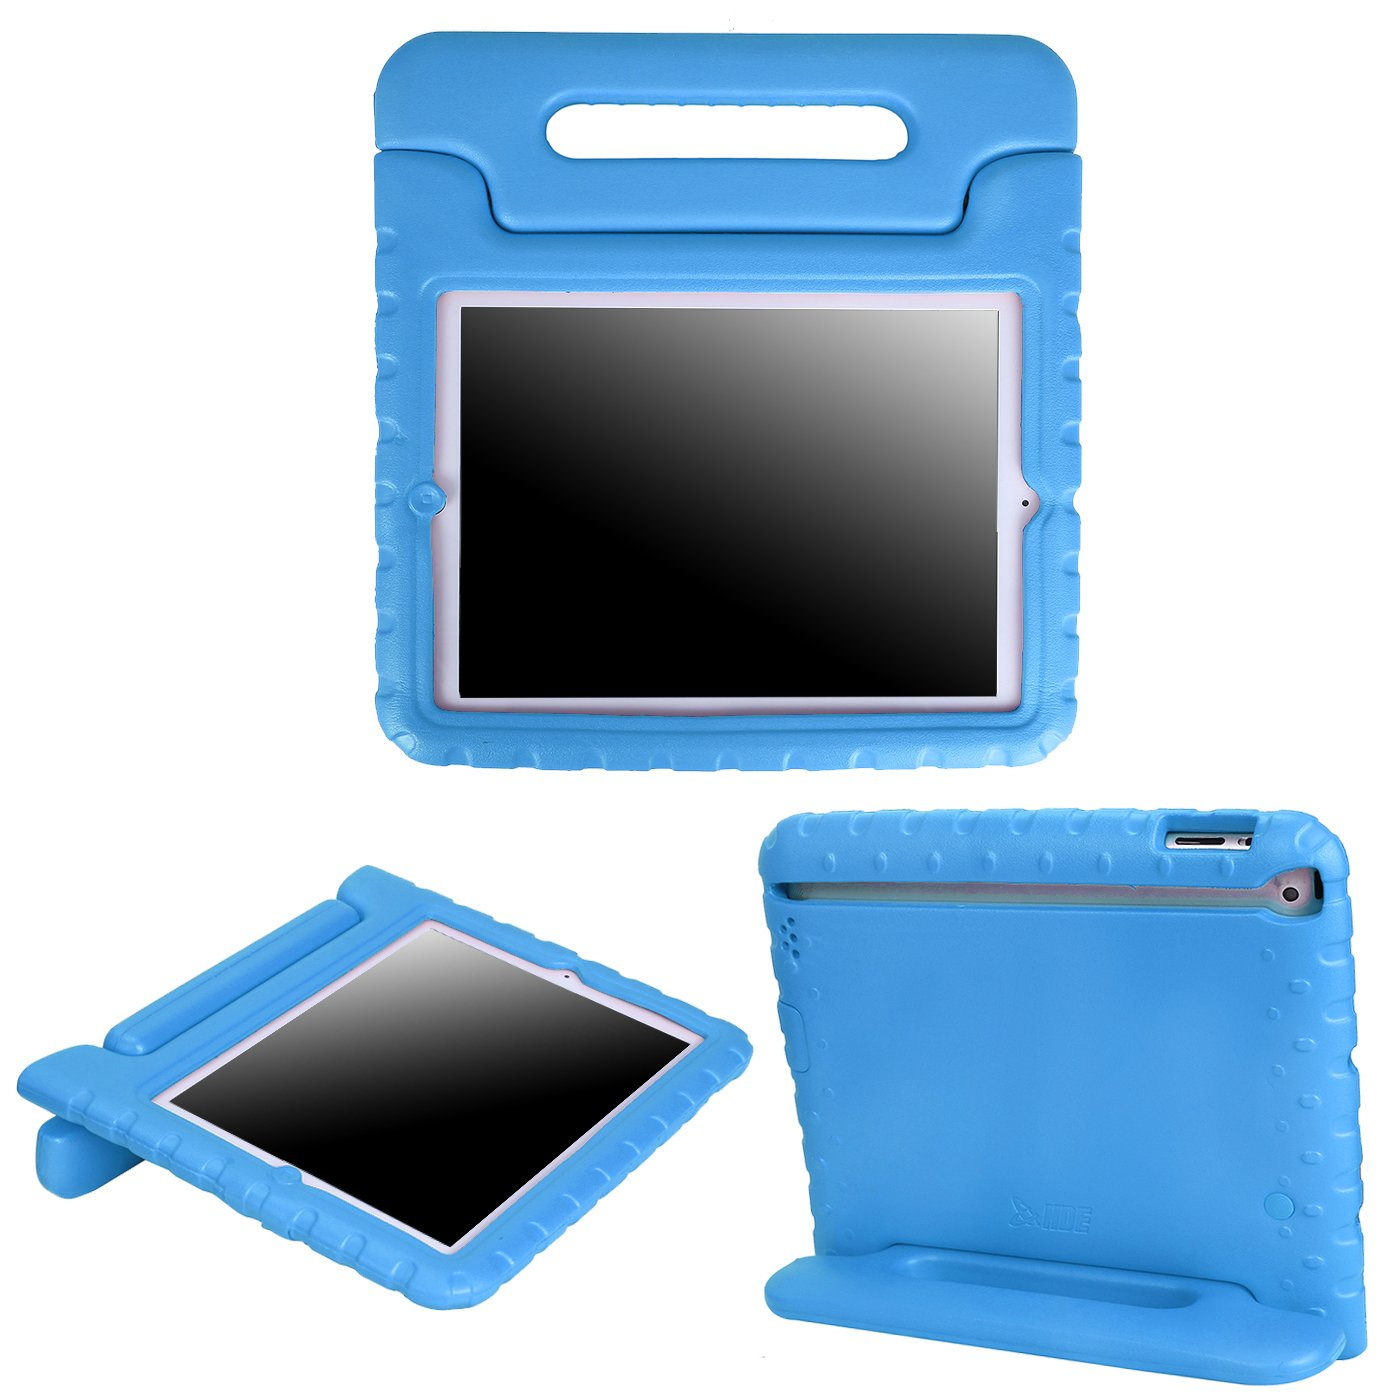 HDE iPad 2 3 4 Case for Kids - Shock Proof Bumper Heavy Duty Protective Cover Handle Stand for Apple iPad 2nd 3rd 4th Generation Tablet (Blue)